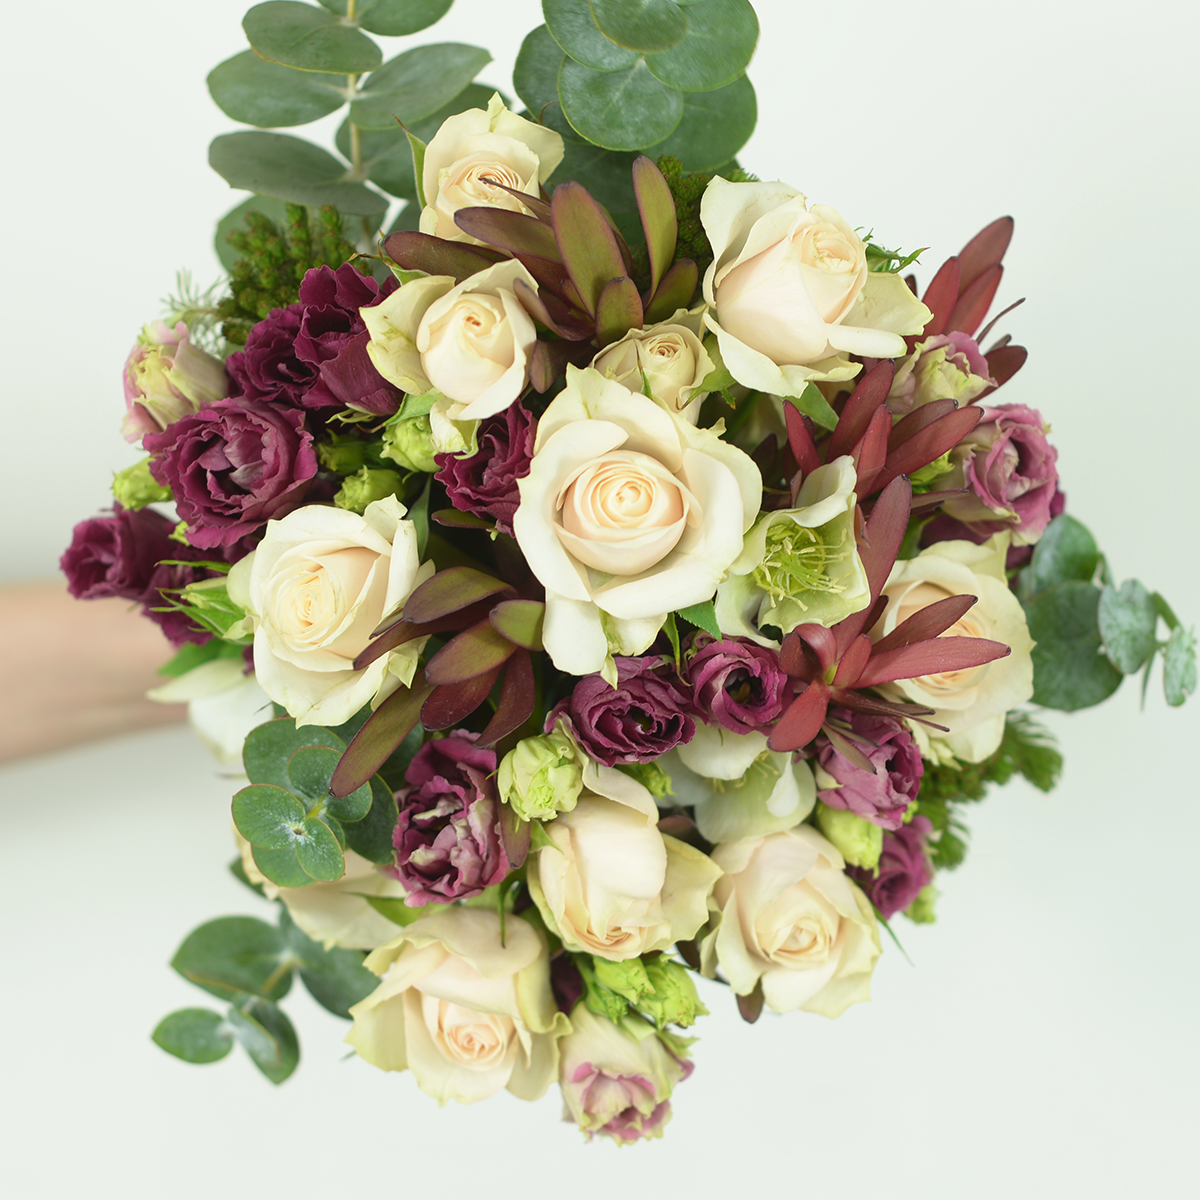 Subscription handtied with full of seasonal flowers and